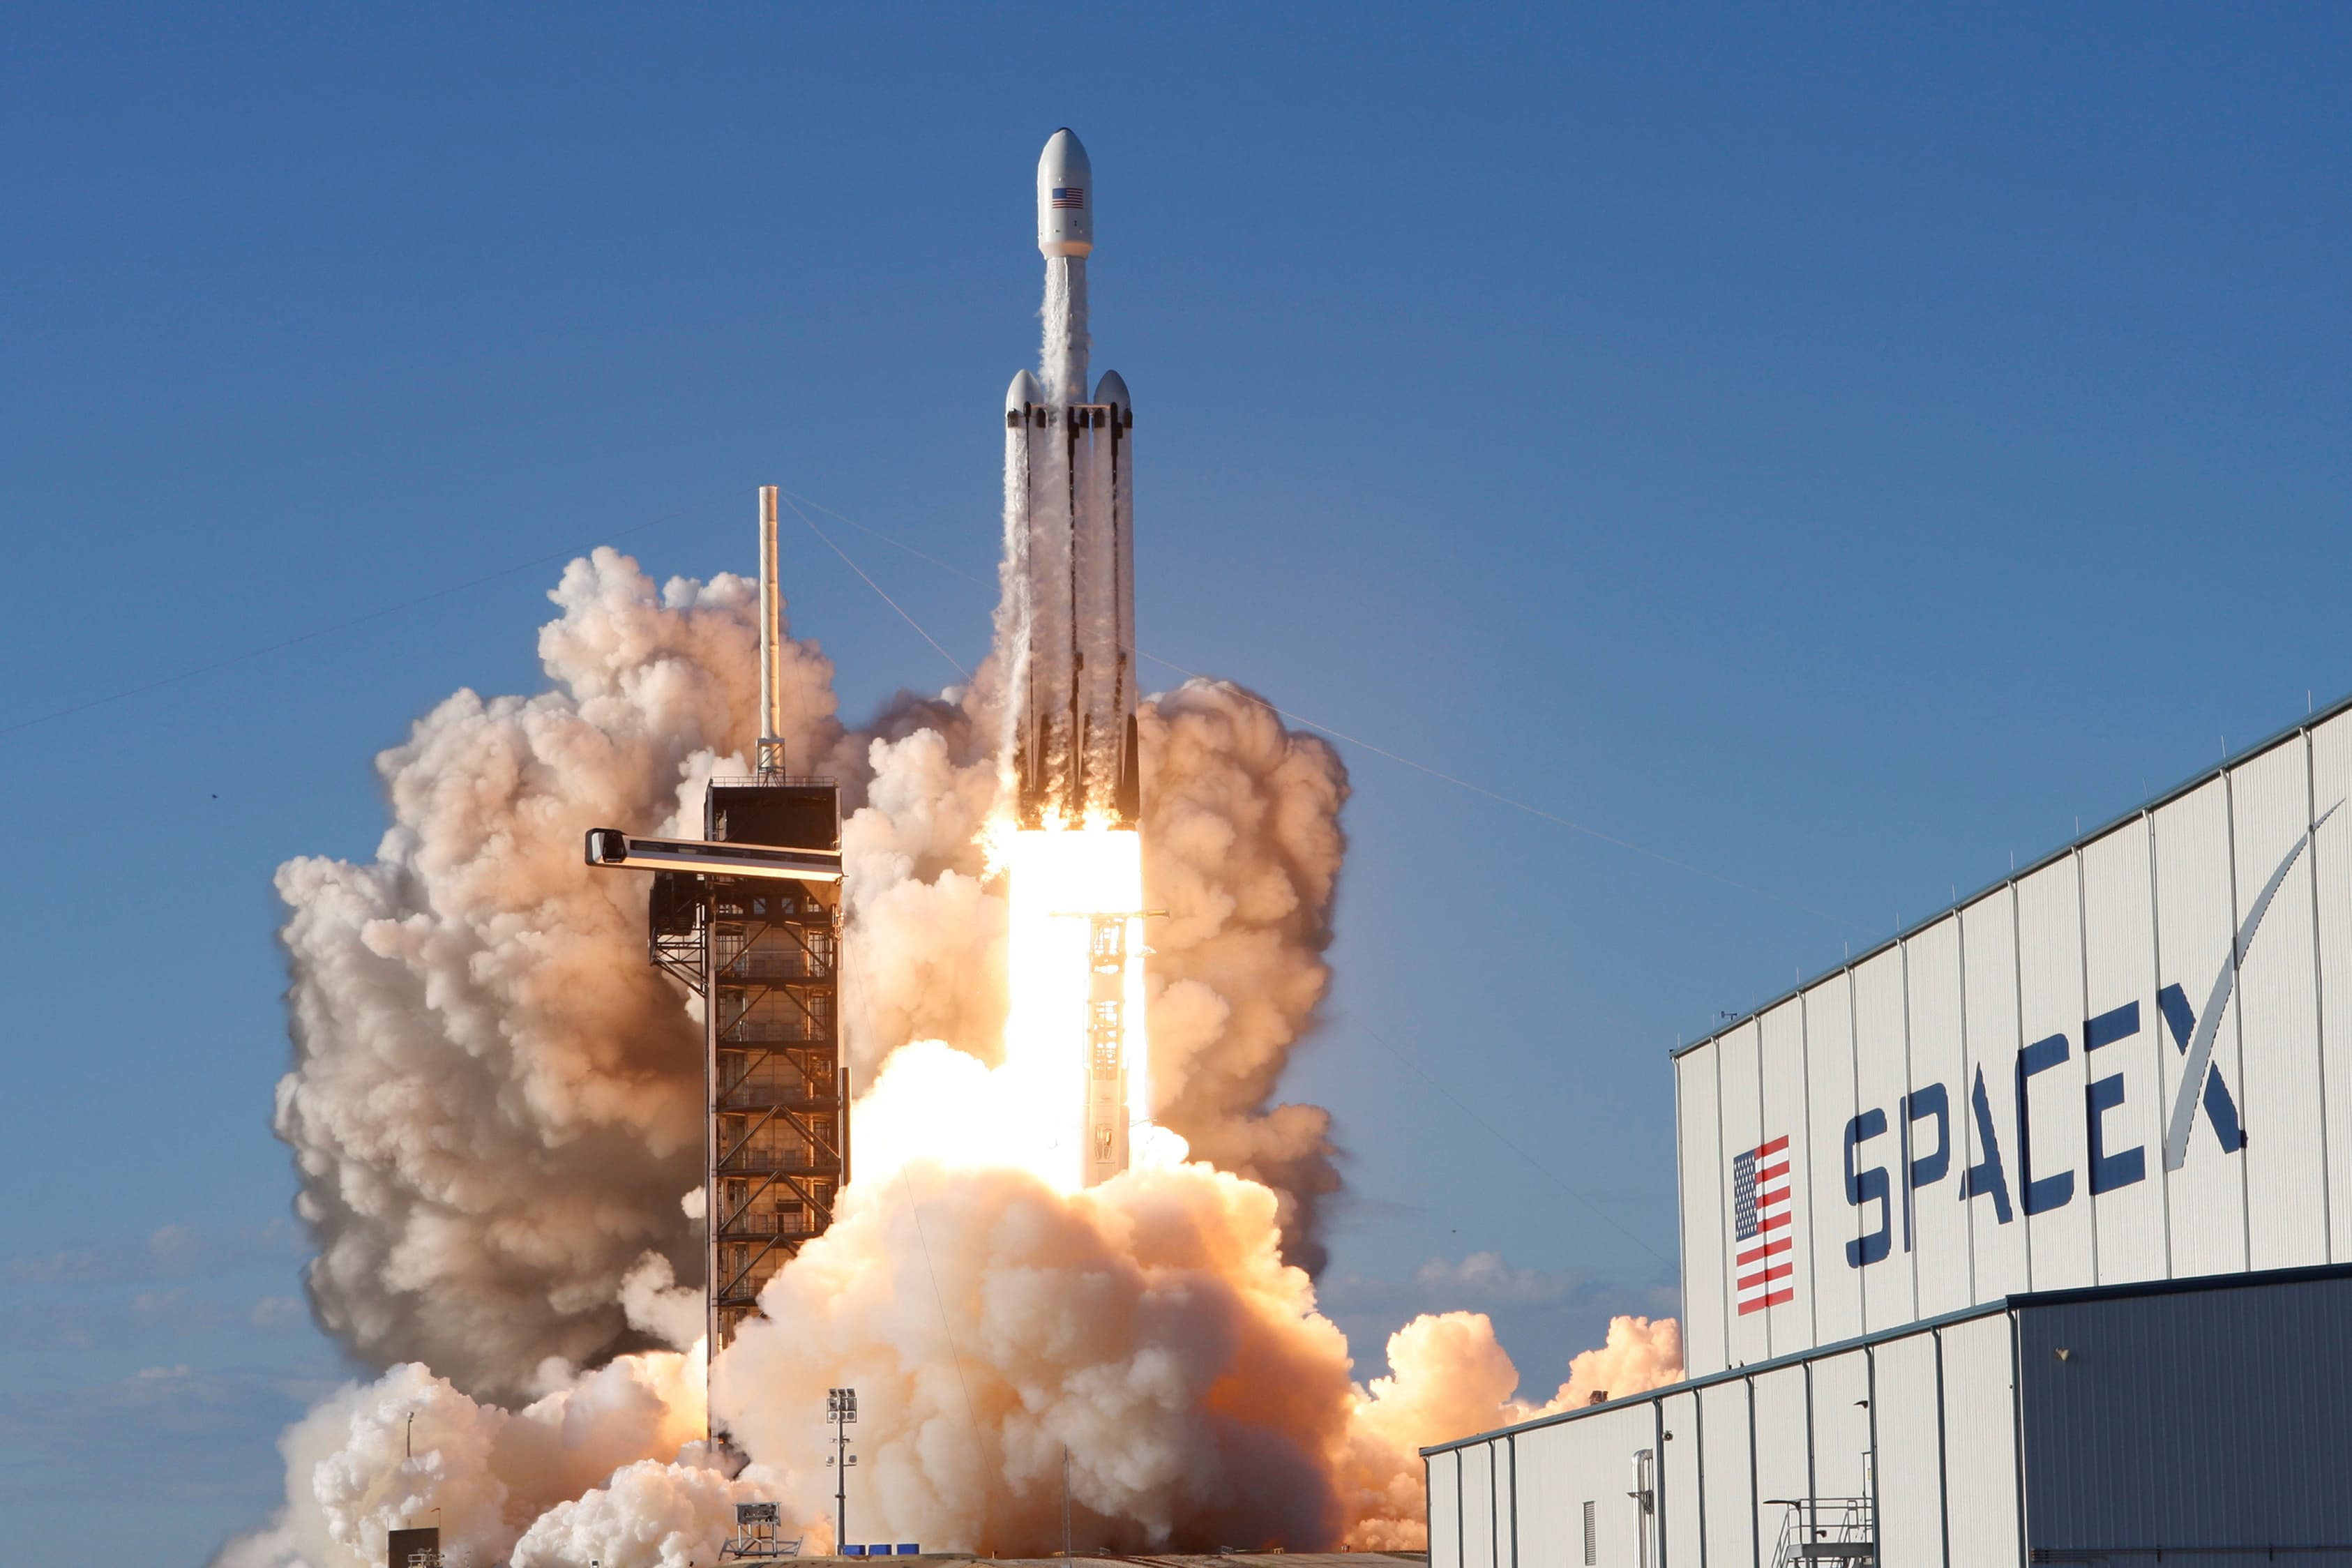 A SpaceX Falcon Heavy rocket, carrying the Arabsat 6A communications satellite, lifts off from the Kennedy Space Center in Cape Canaveral, Florida, April 11, 2019.